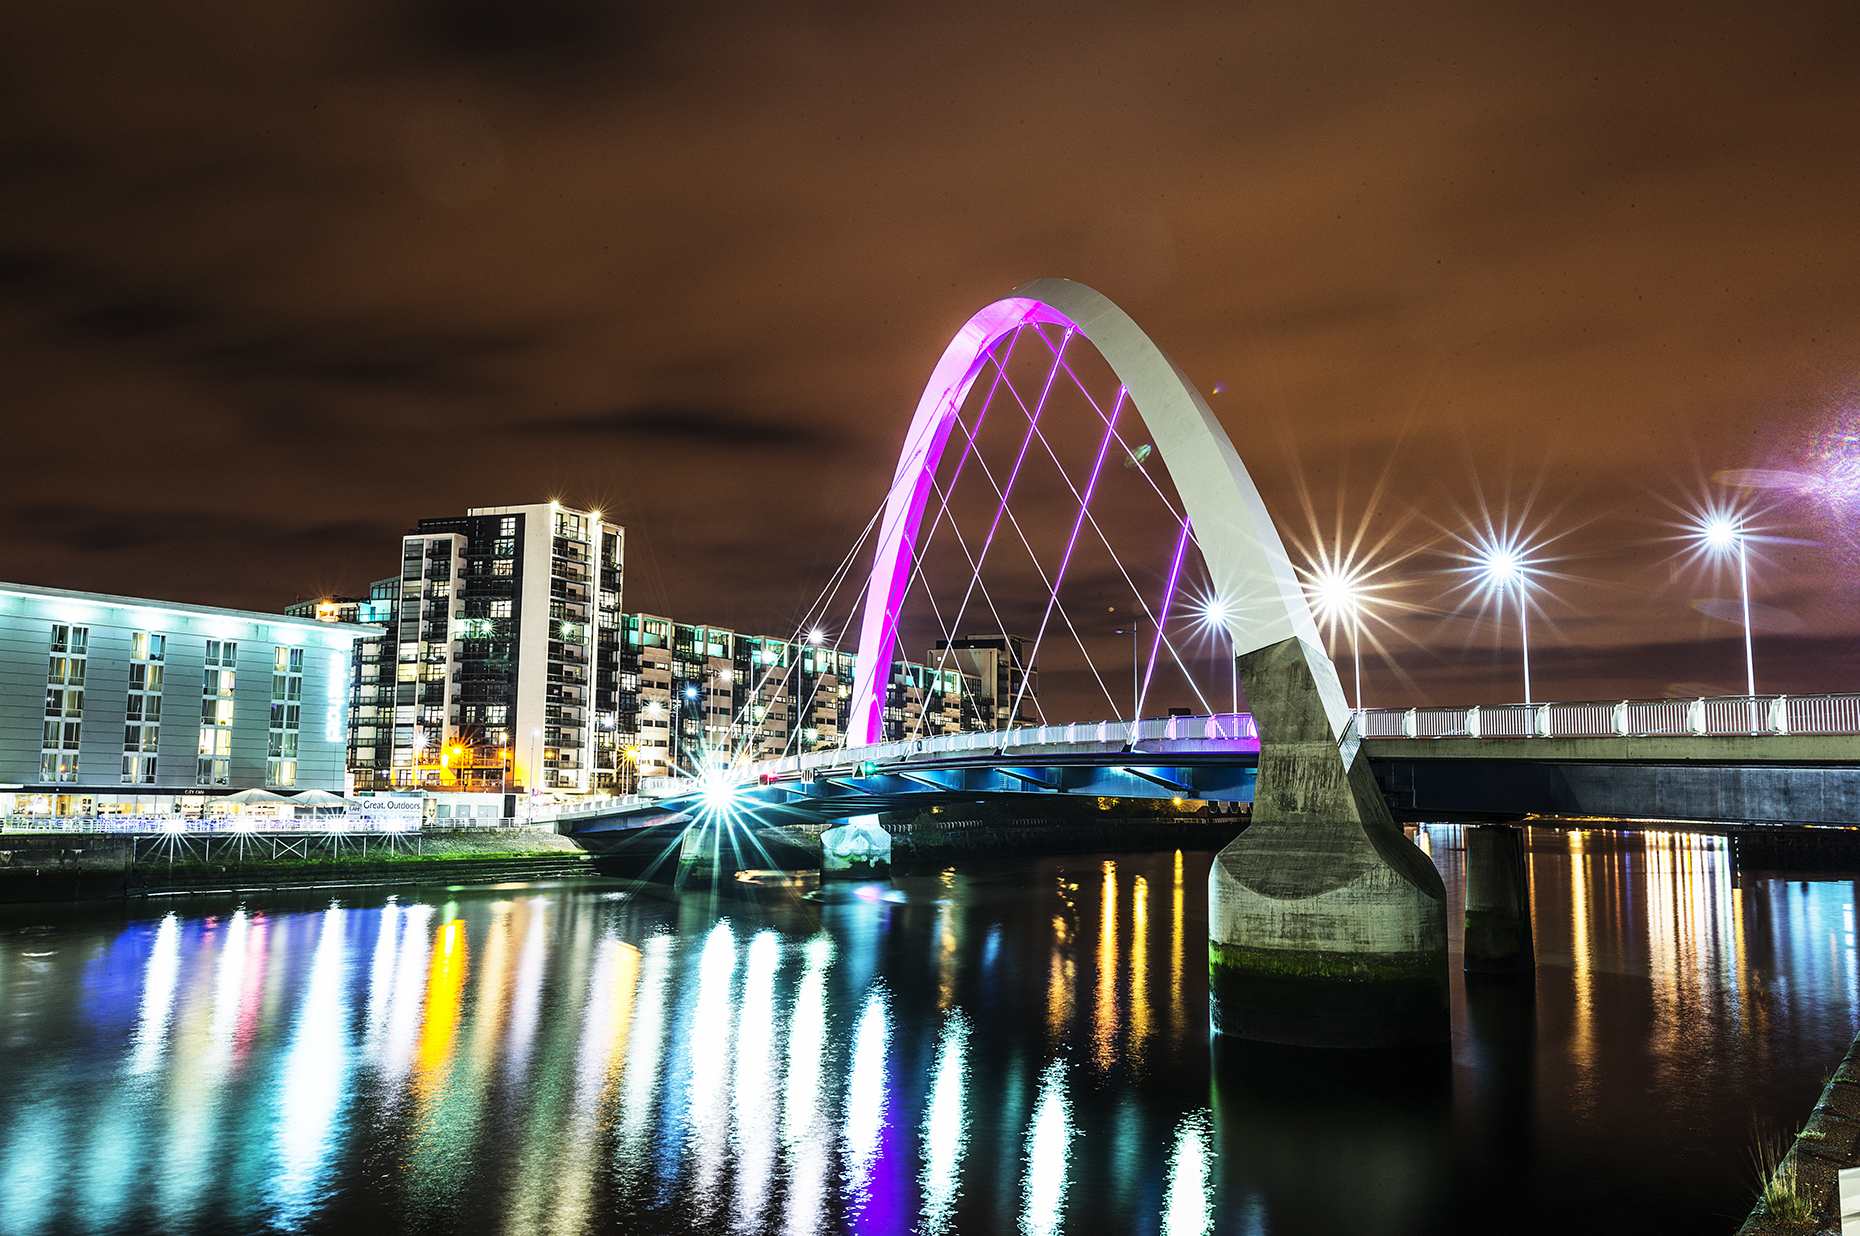 Cities at Night - Glasgow